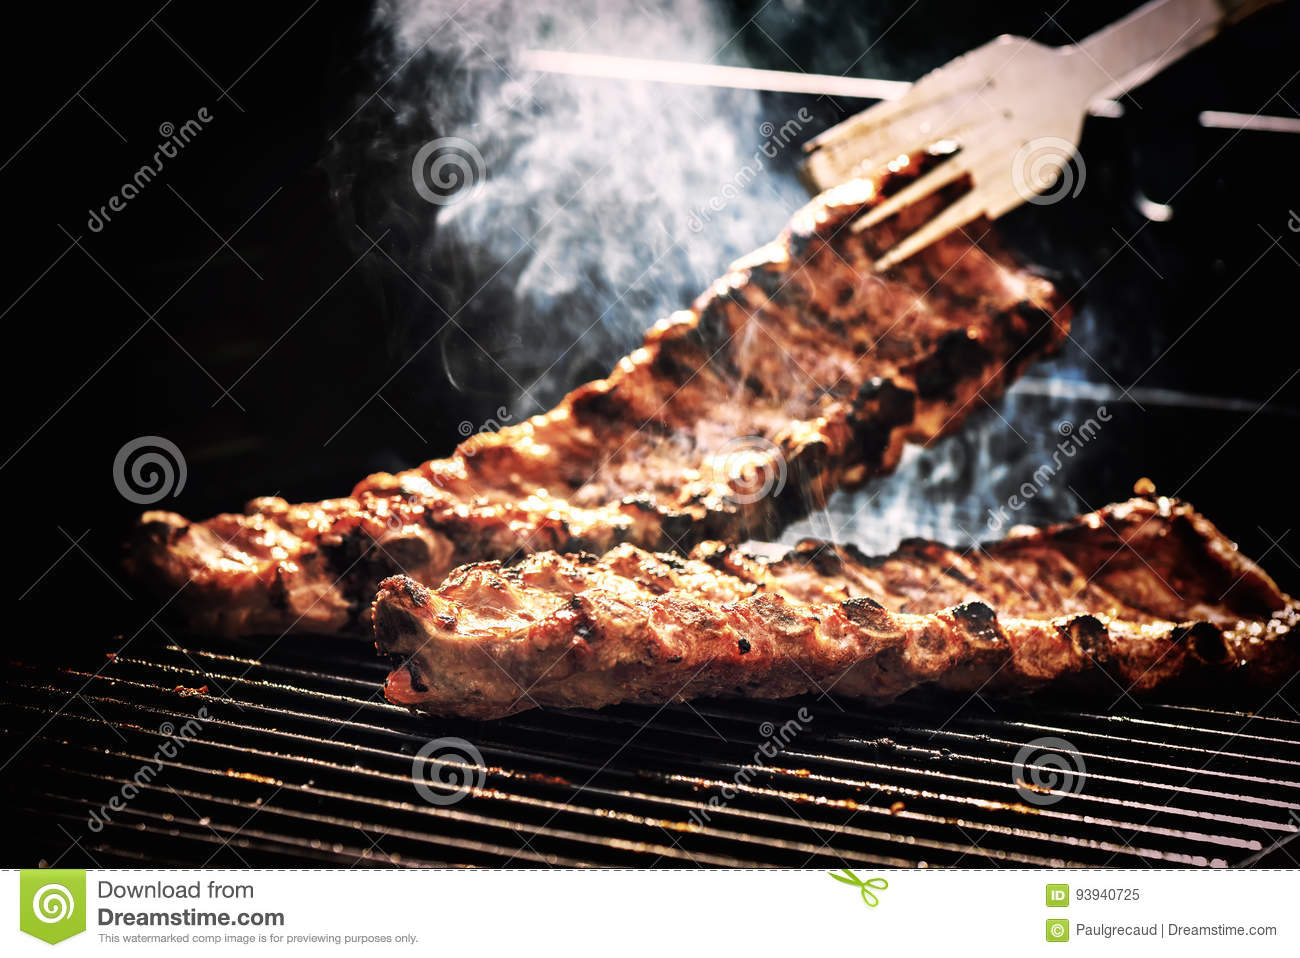 Spare ribs cooking on barbecue grill for summer outdoor party. F